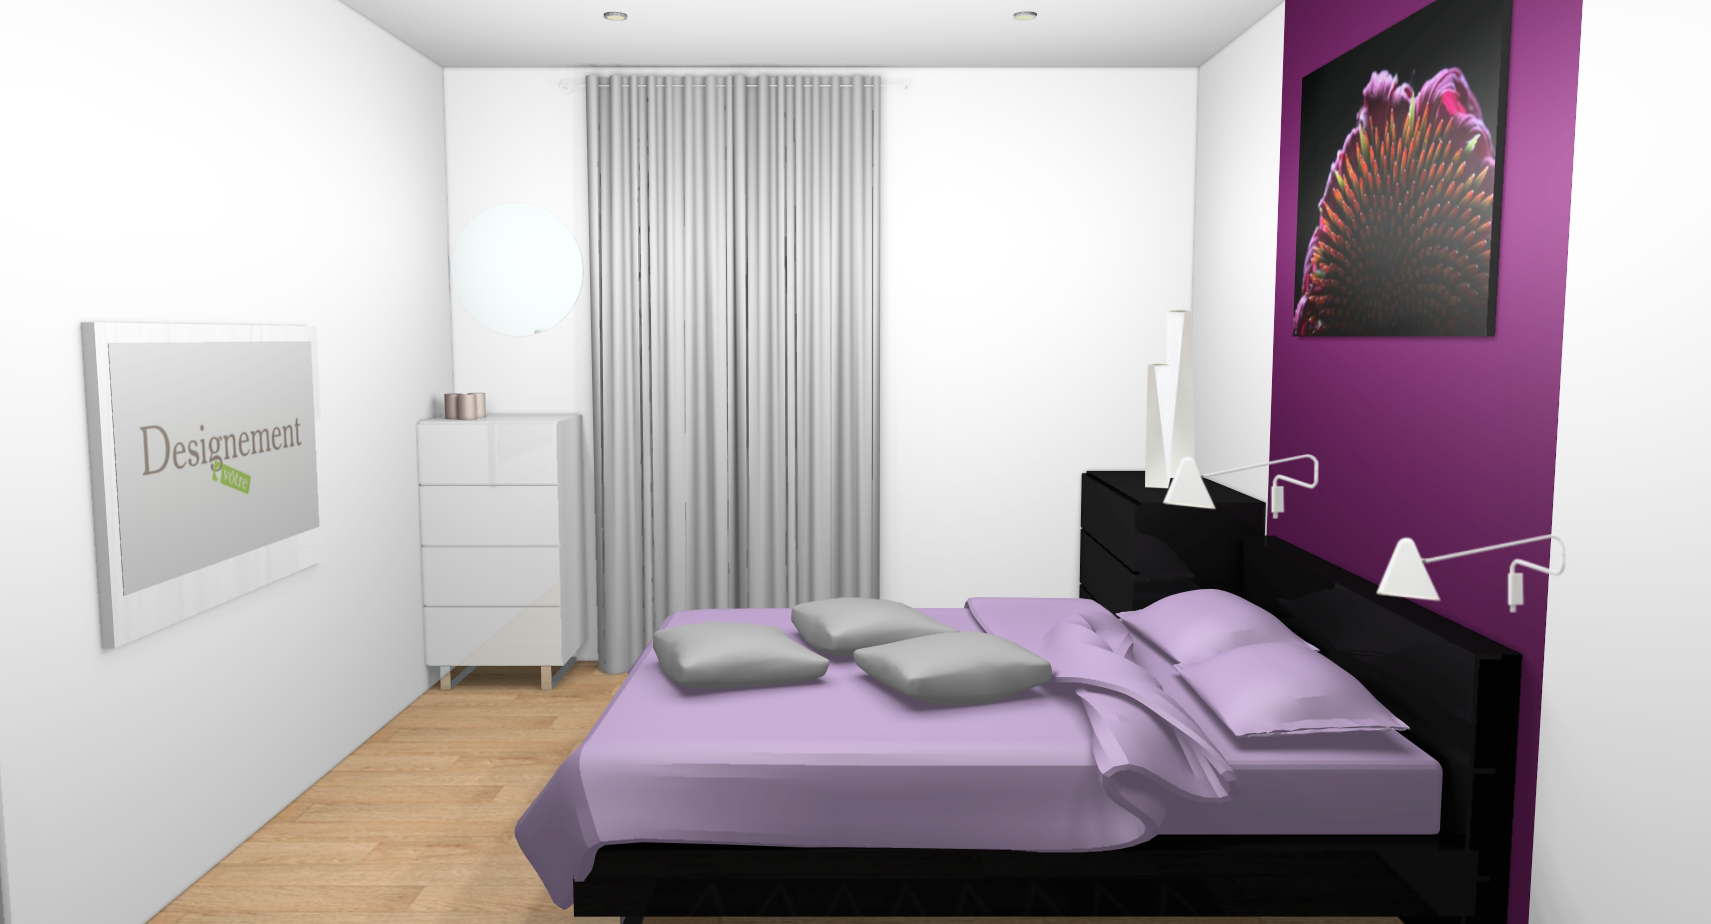 D co chambre prune et blanc for Deco salon prune